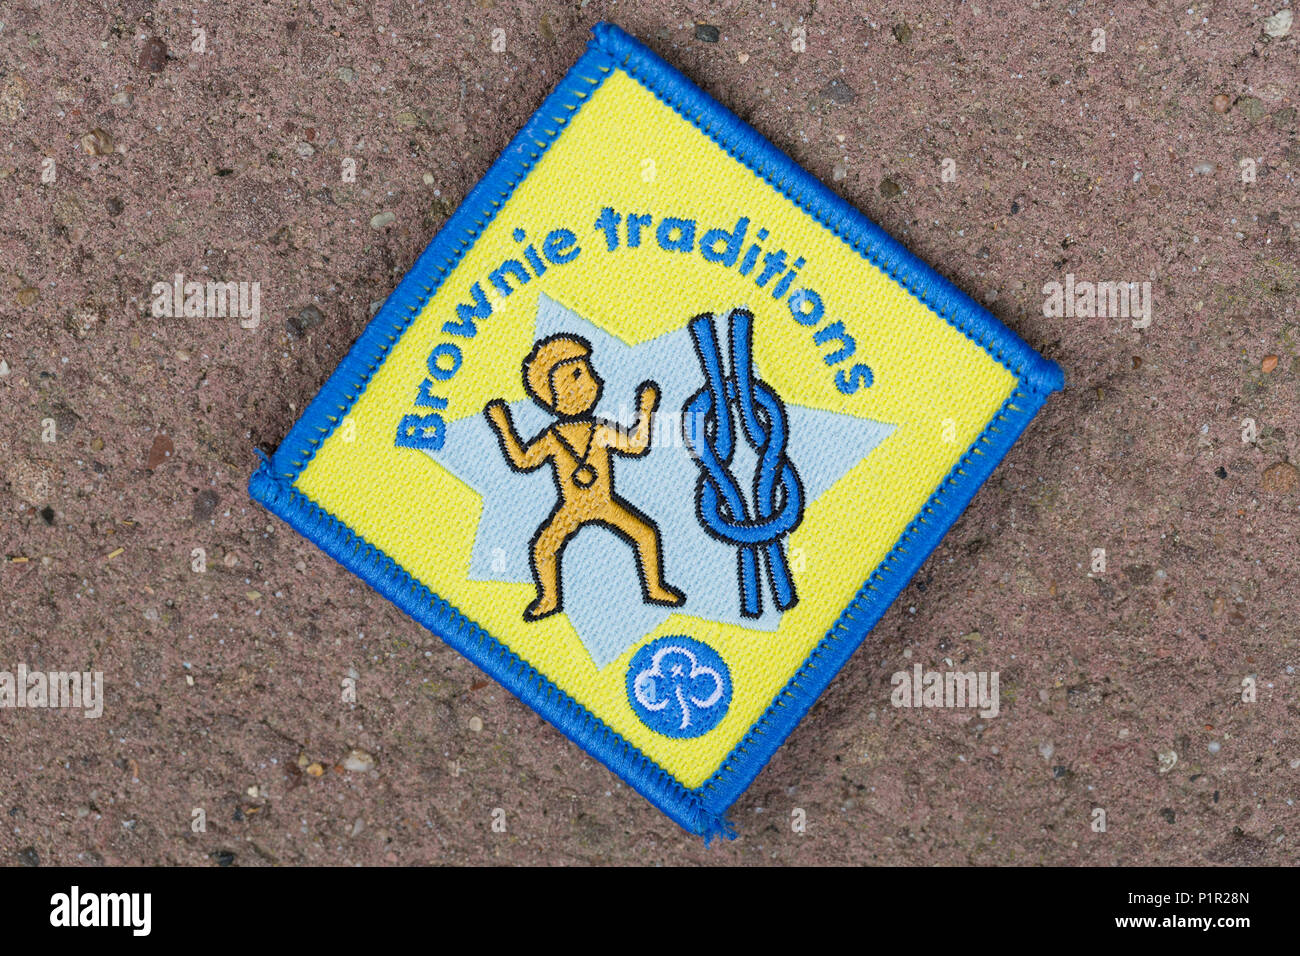 Traditions Brownie Girl Guide / badge Brownies Photo Stock